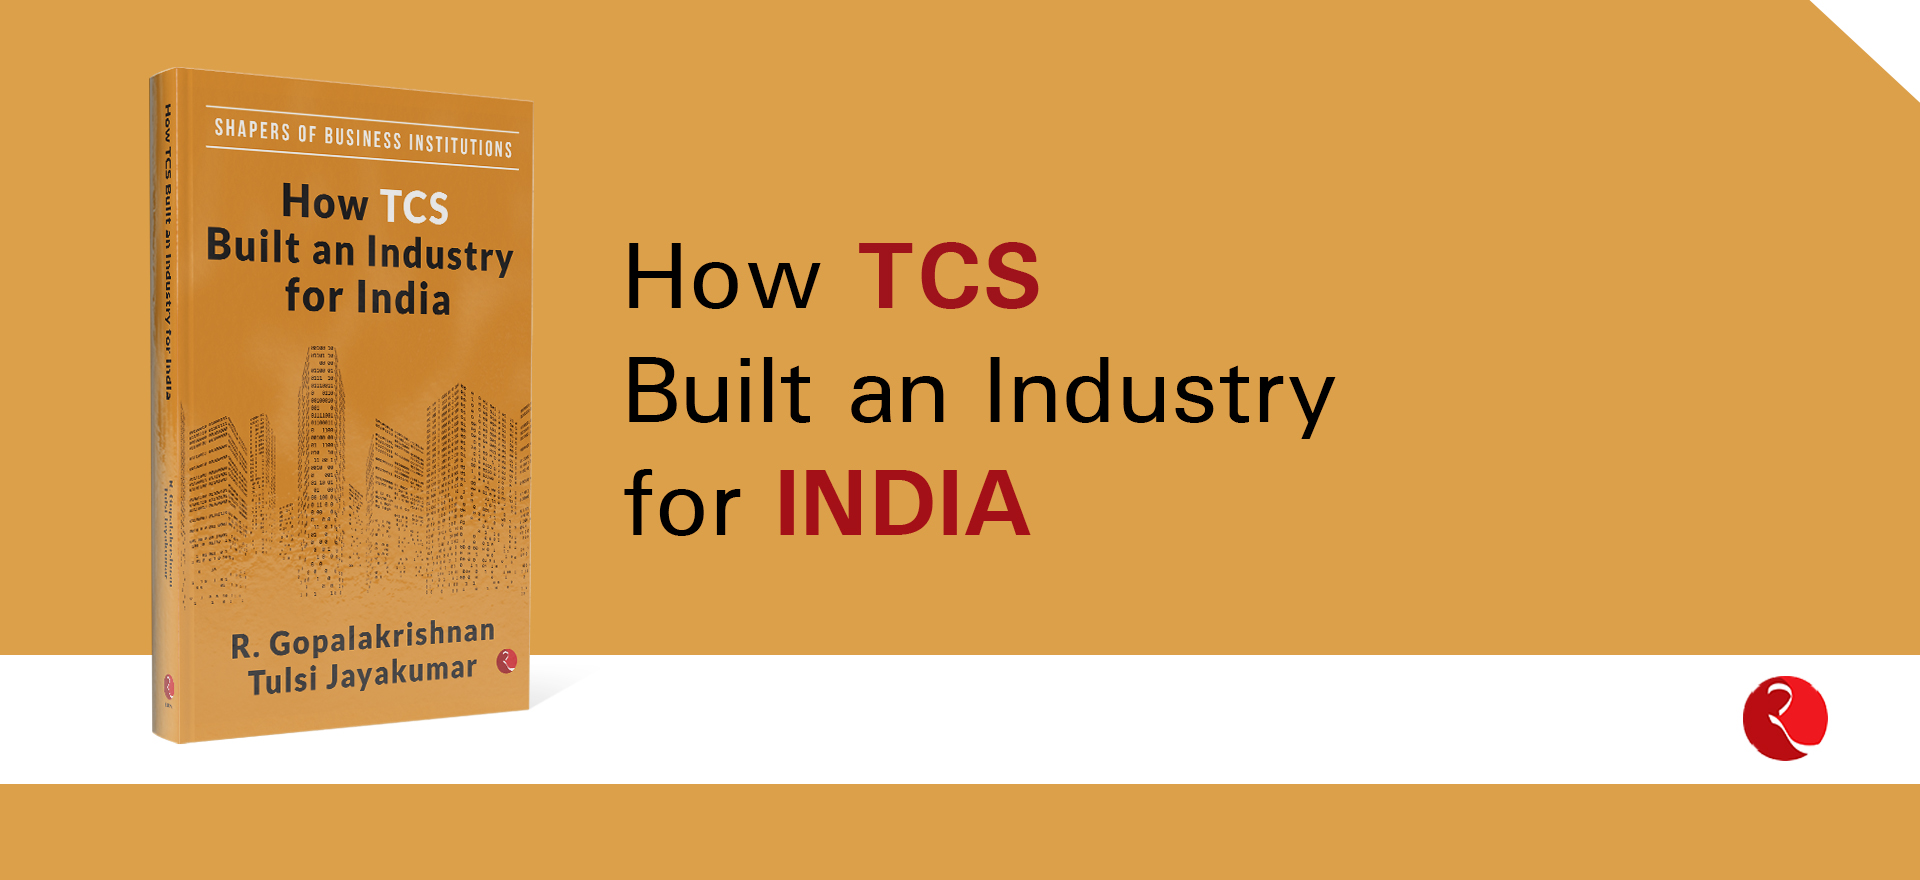 tcs cover Photo